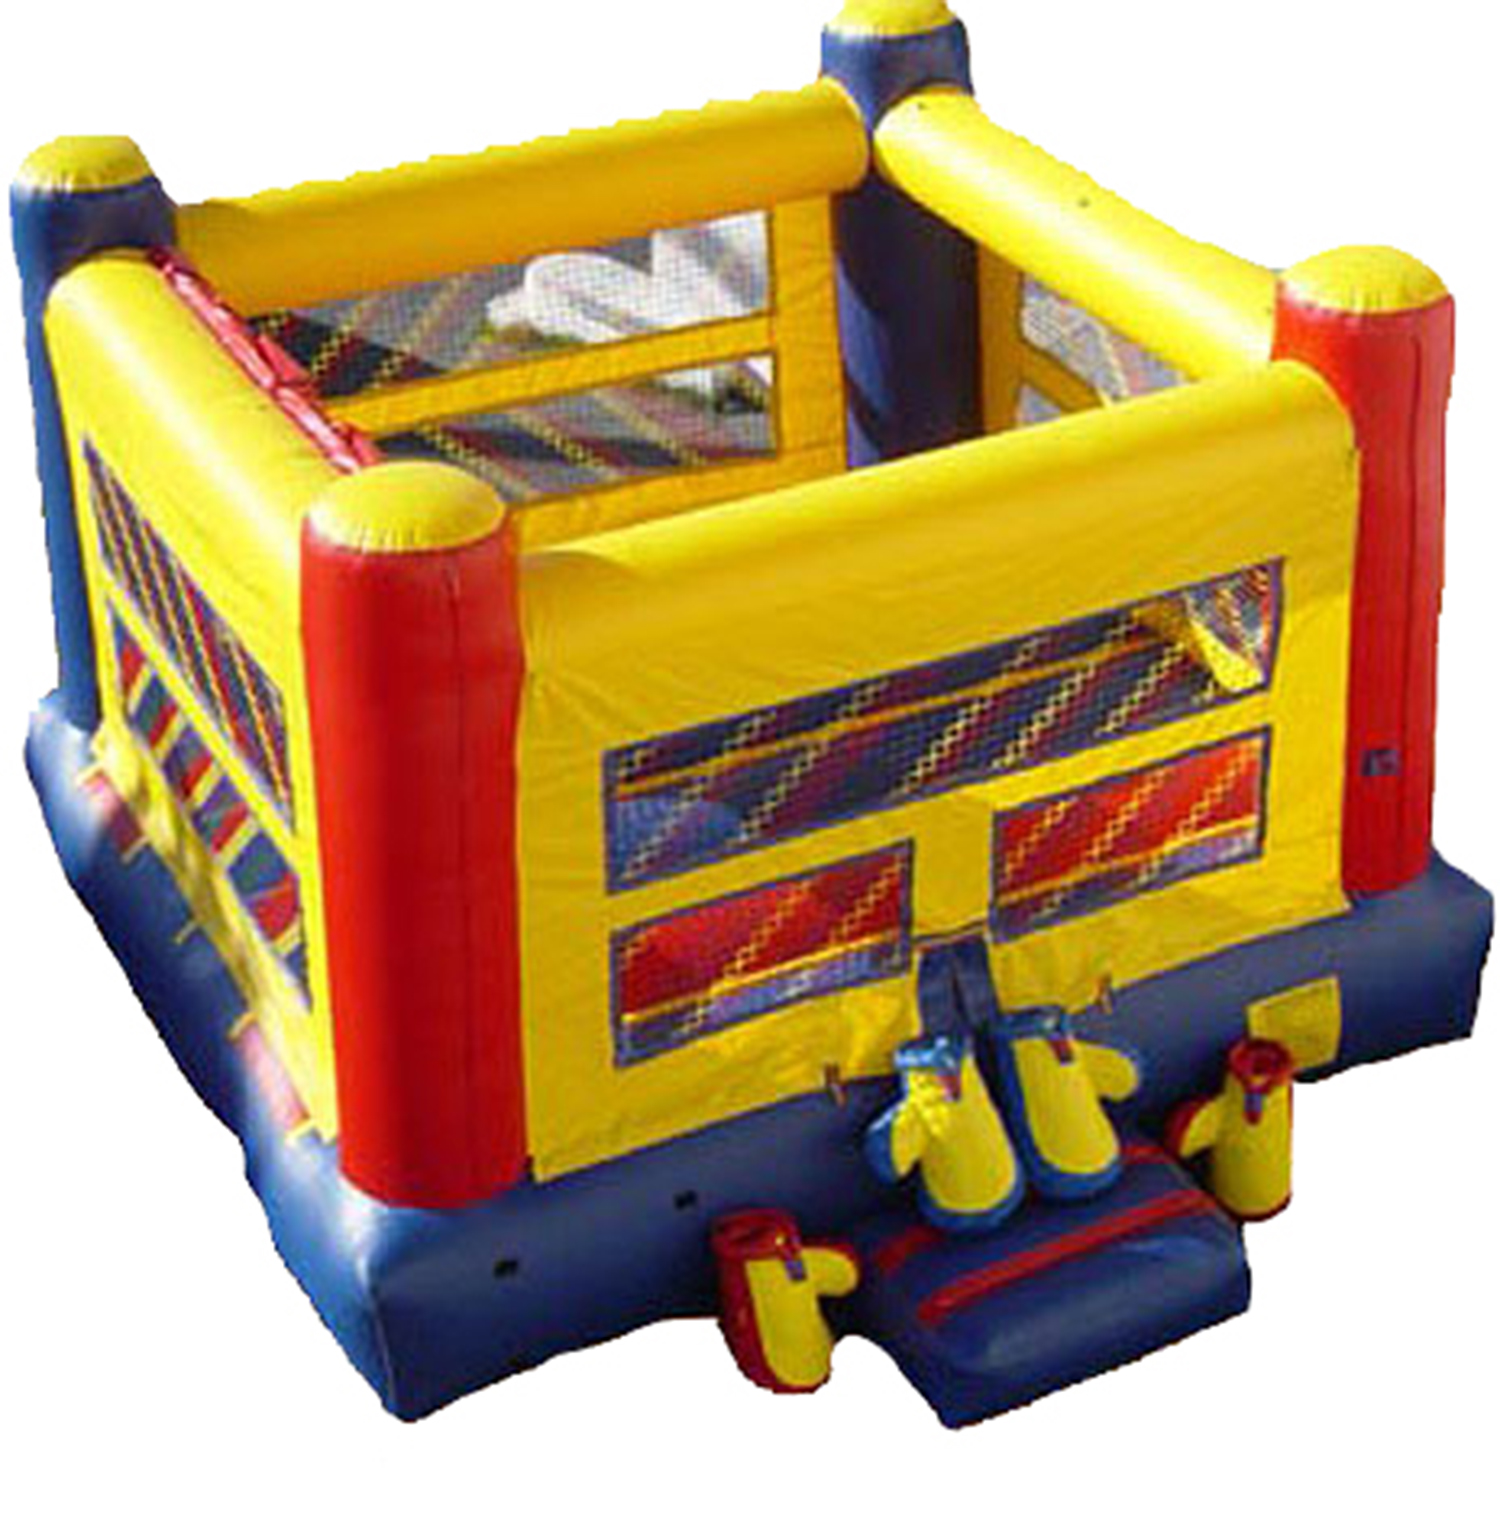 Bouncy Boxing Ring - $195.00 ALL DAY RENTAL